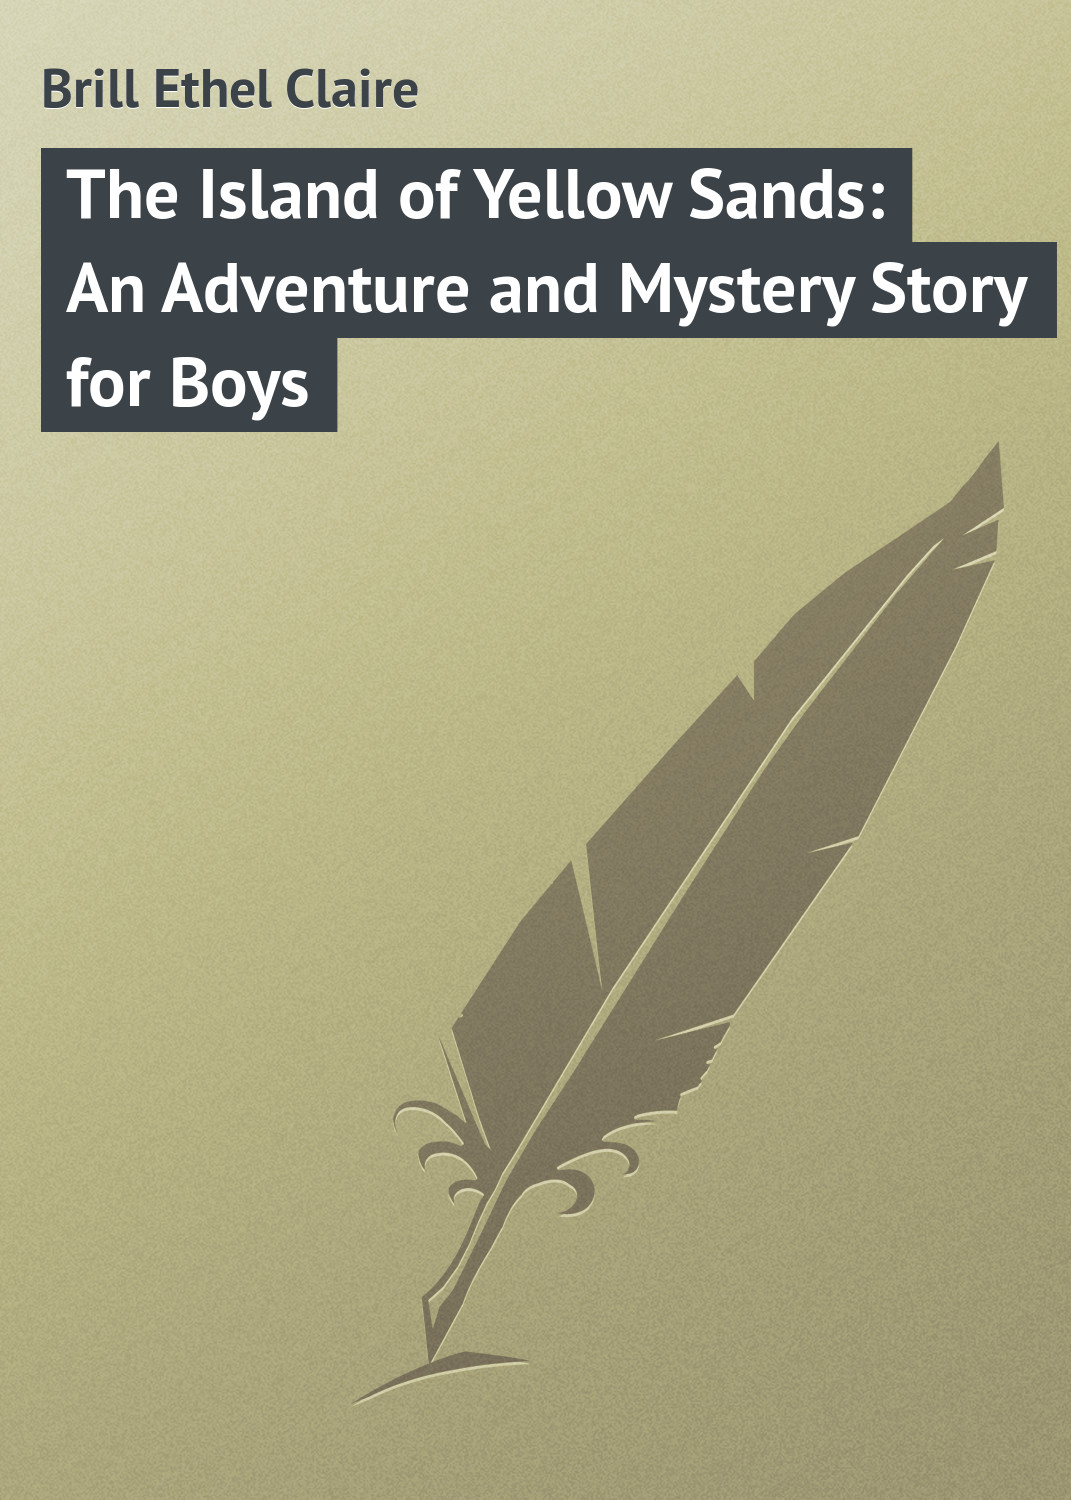 Brill Ethel Claire The Island of Yellow Sands: An Adventure and Mystery Story for Boys hardy boys 30 the wailing siren mystery